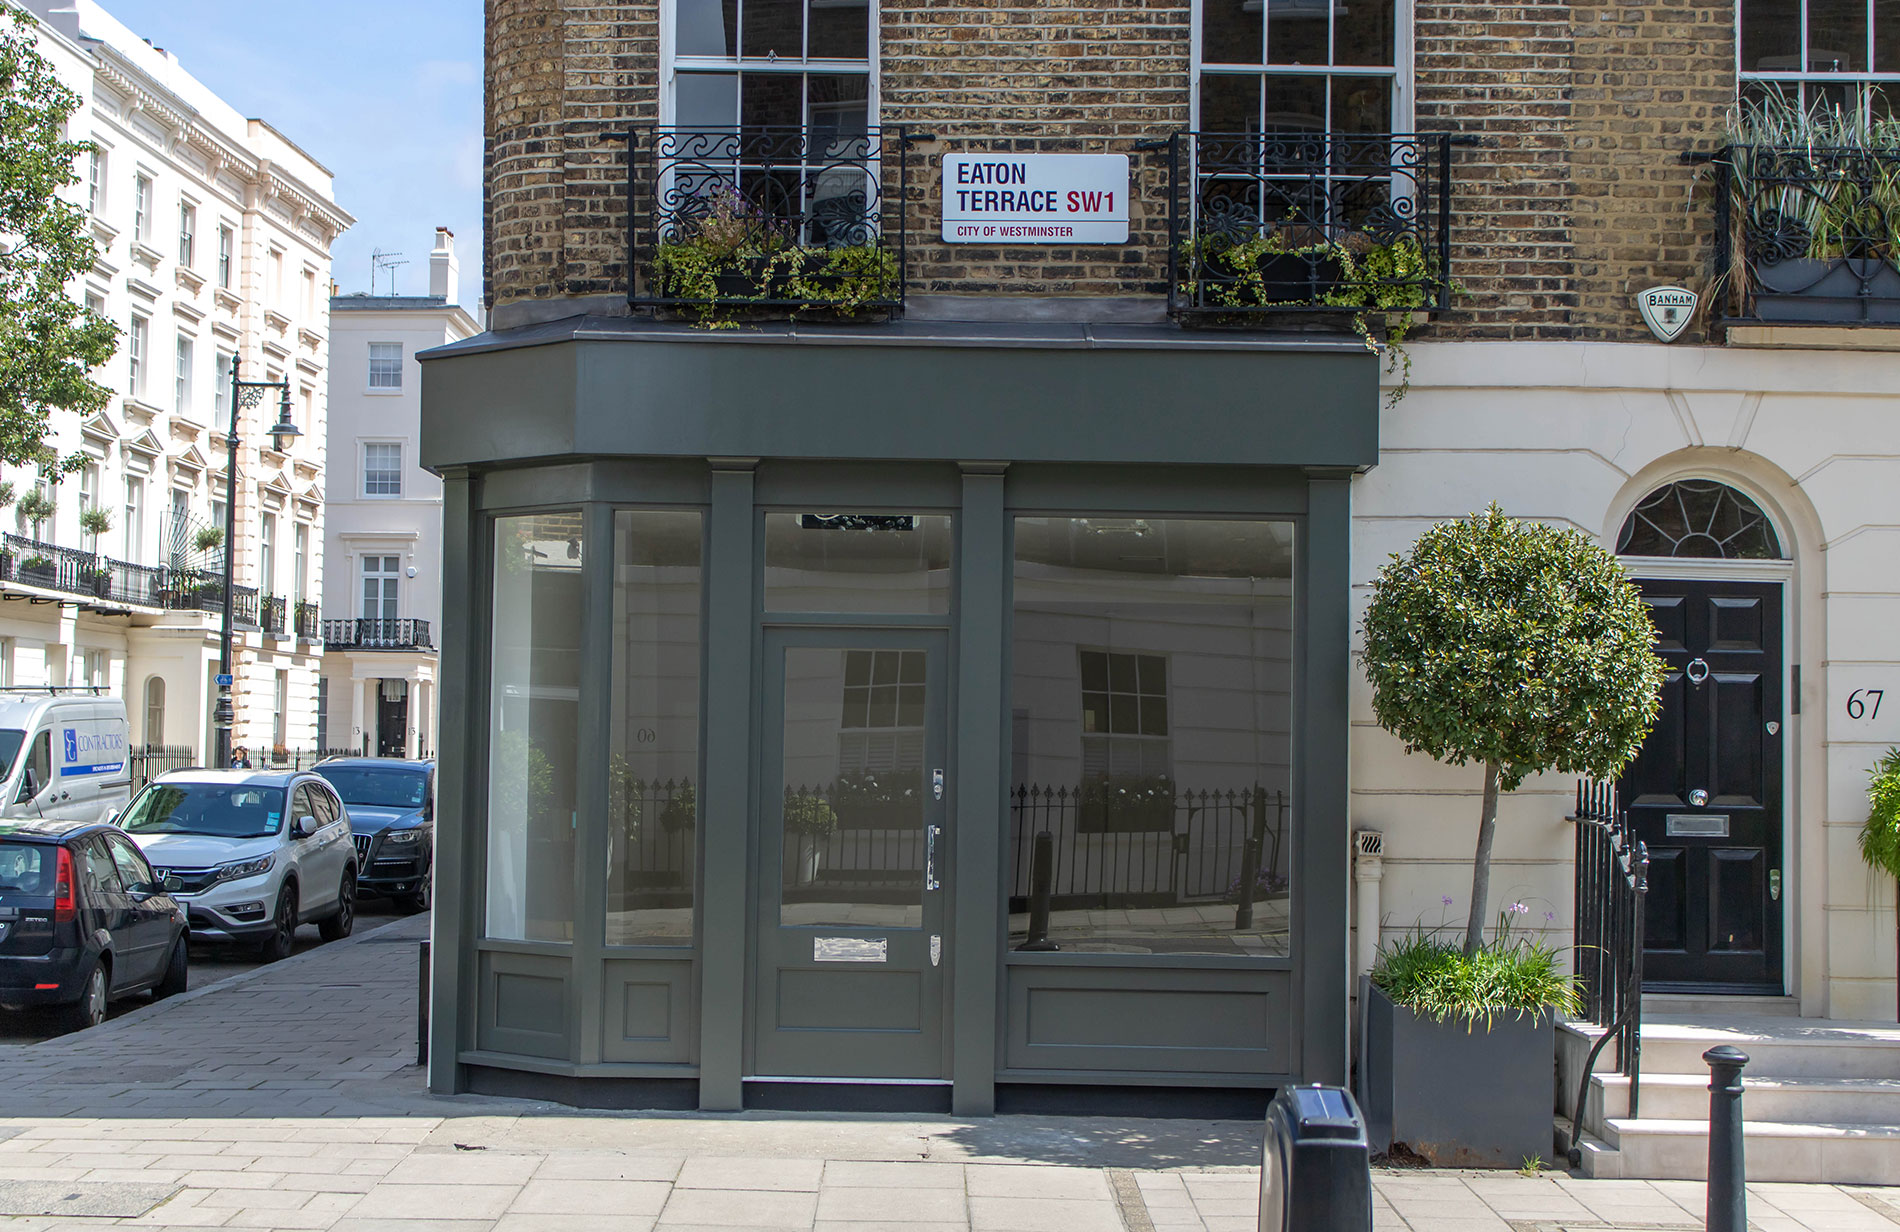 eaton terrace shopfront